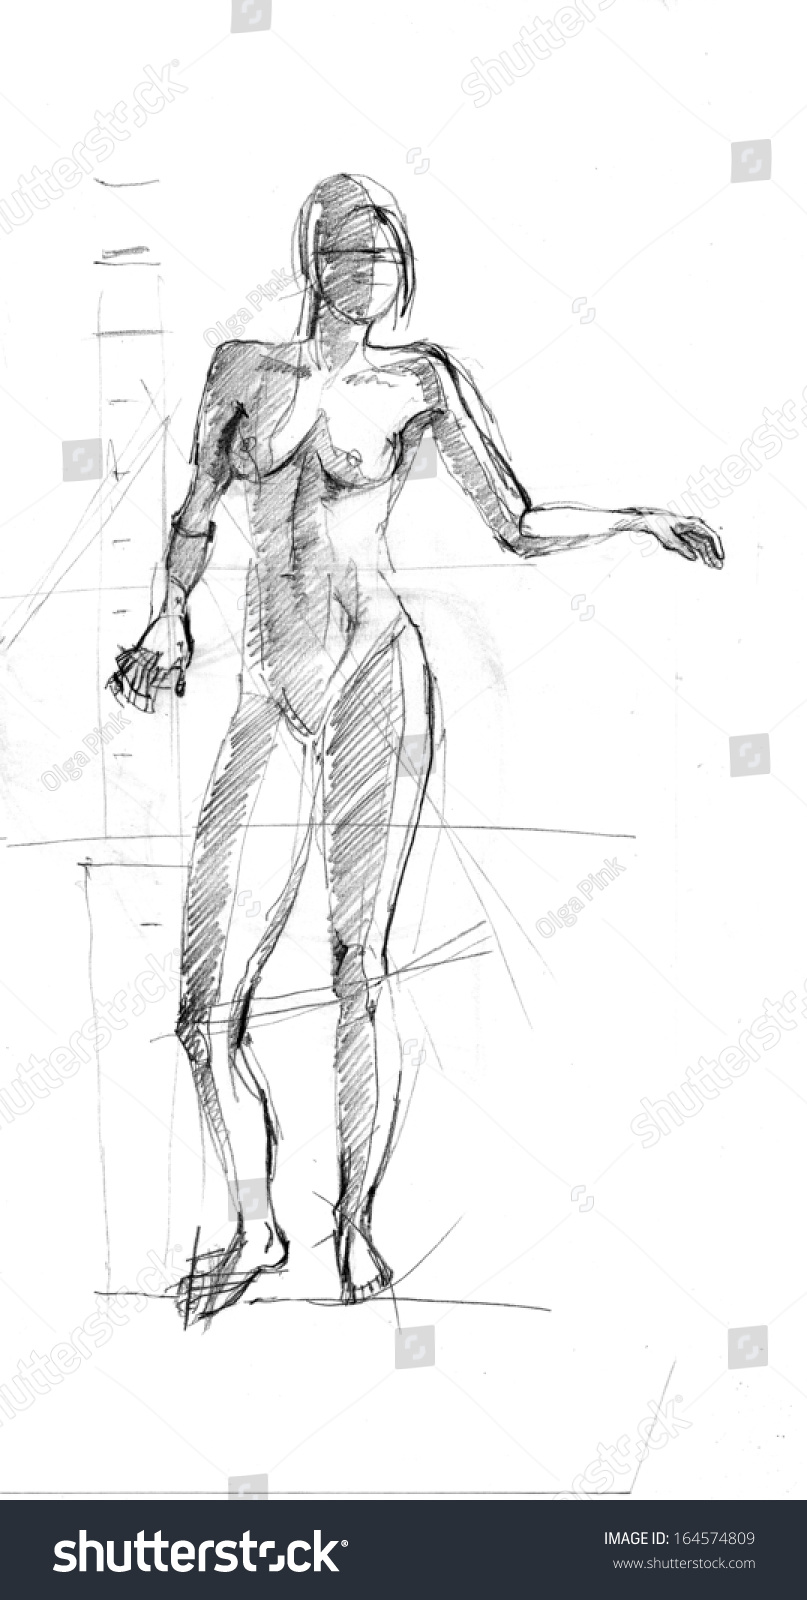 Pencil sketch of the woman body illustration